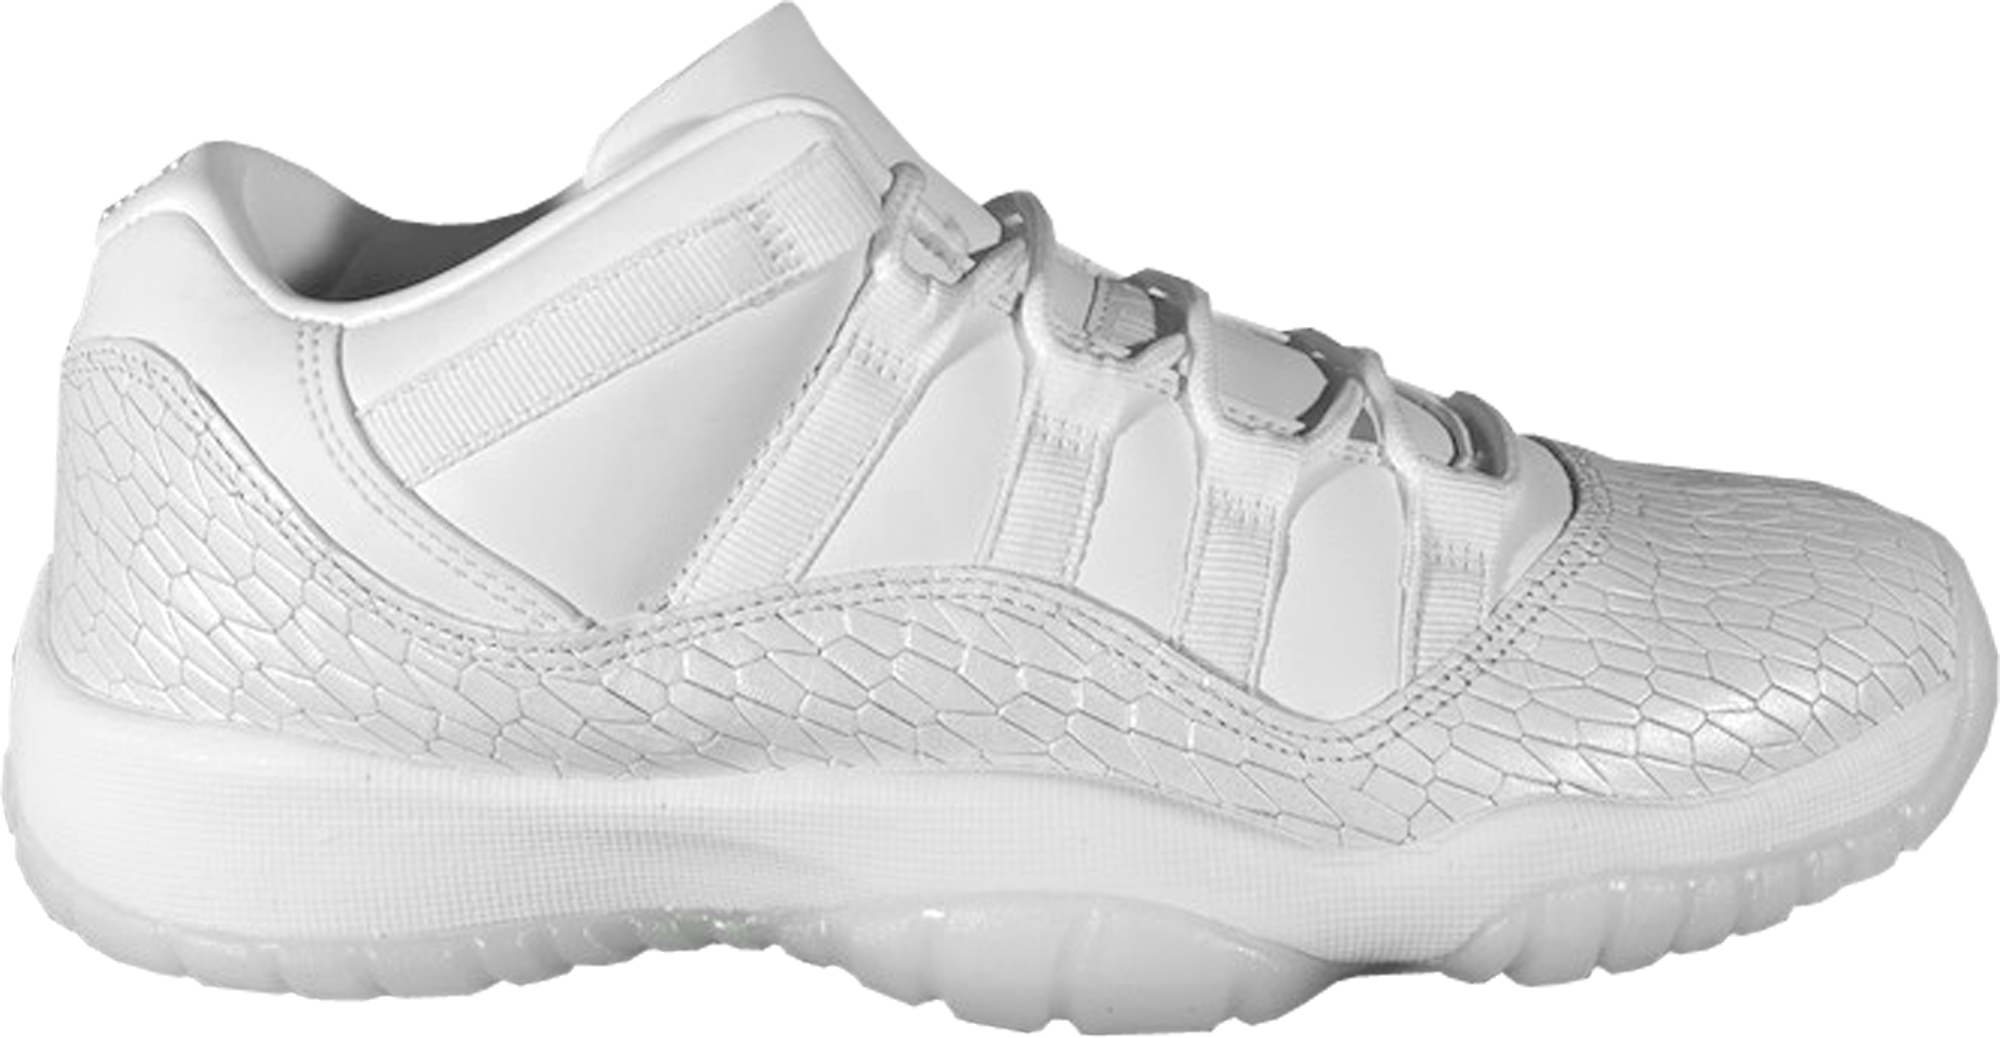 low priced c3303 de0b6 Girls Air Jordan 11 Retro Low Heiress White Ice - StockX News